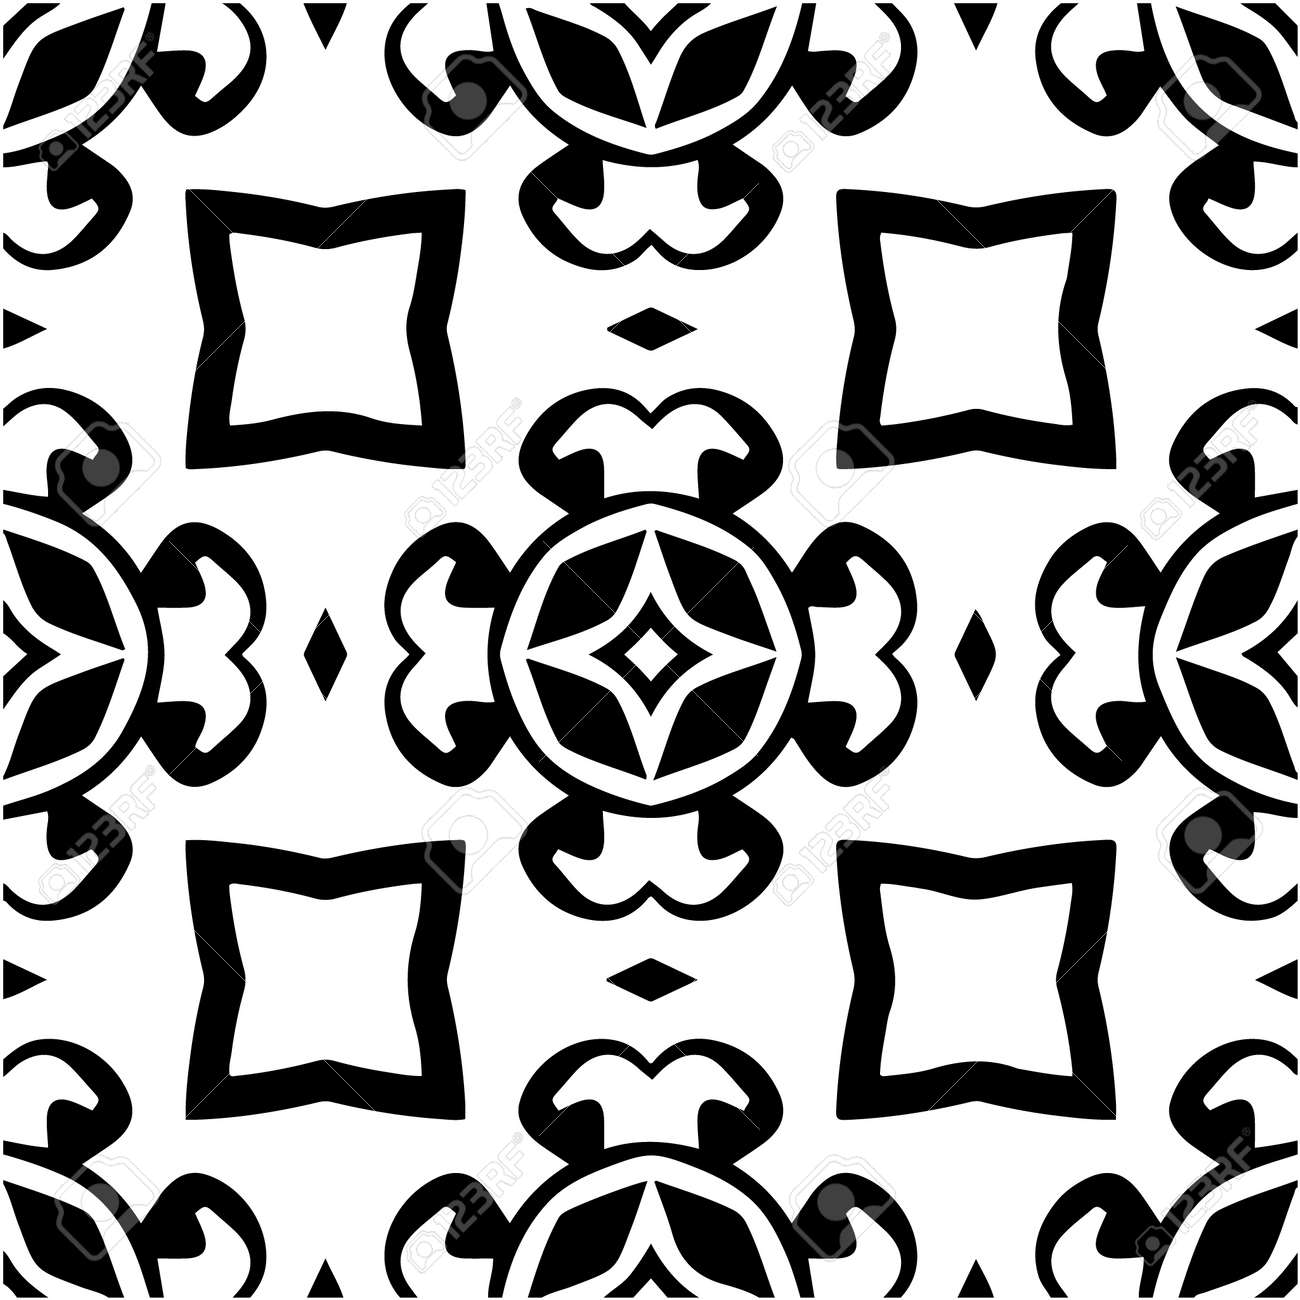 Geometric vector pattern with triangular elements. Seamless abstract ornament for wallpapers and backgrounds. Black and white colors. - 168440484